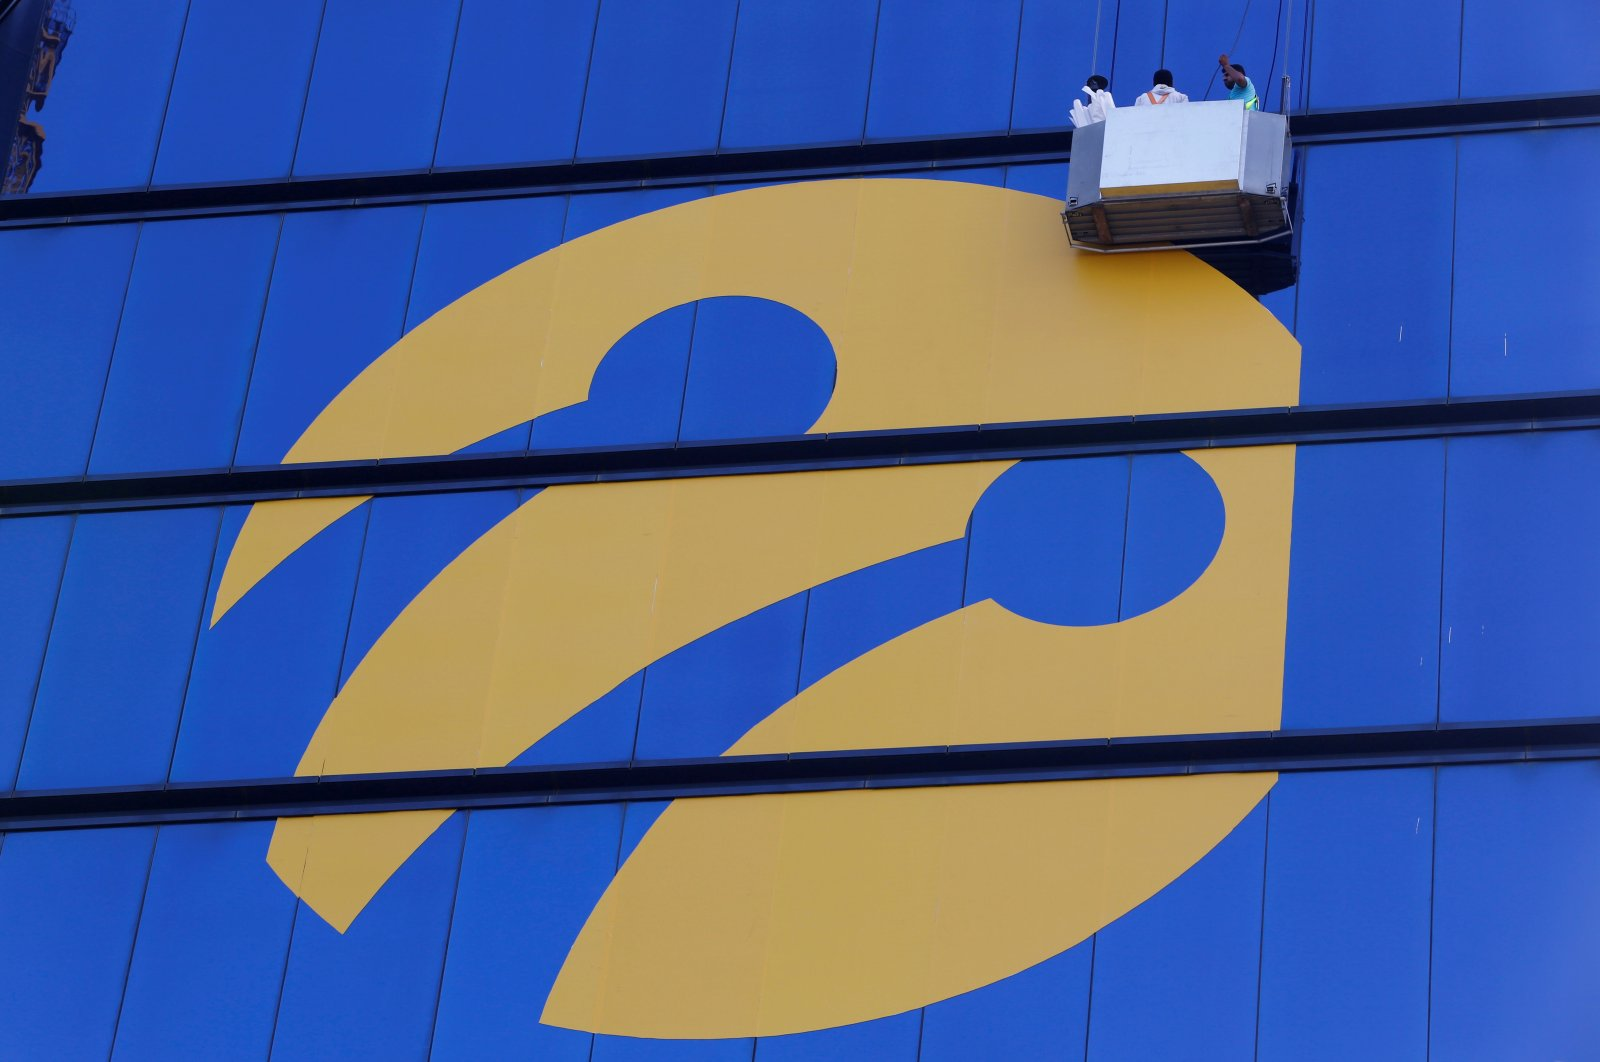 The logo of Turkcell on the Tat Towers in Istanbul, Turkey, June 29, 2016. (Reuters Photo)